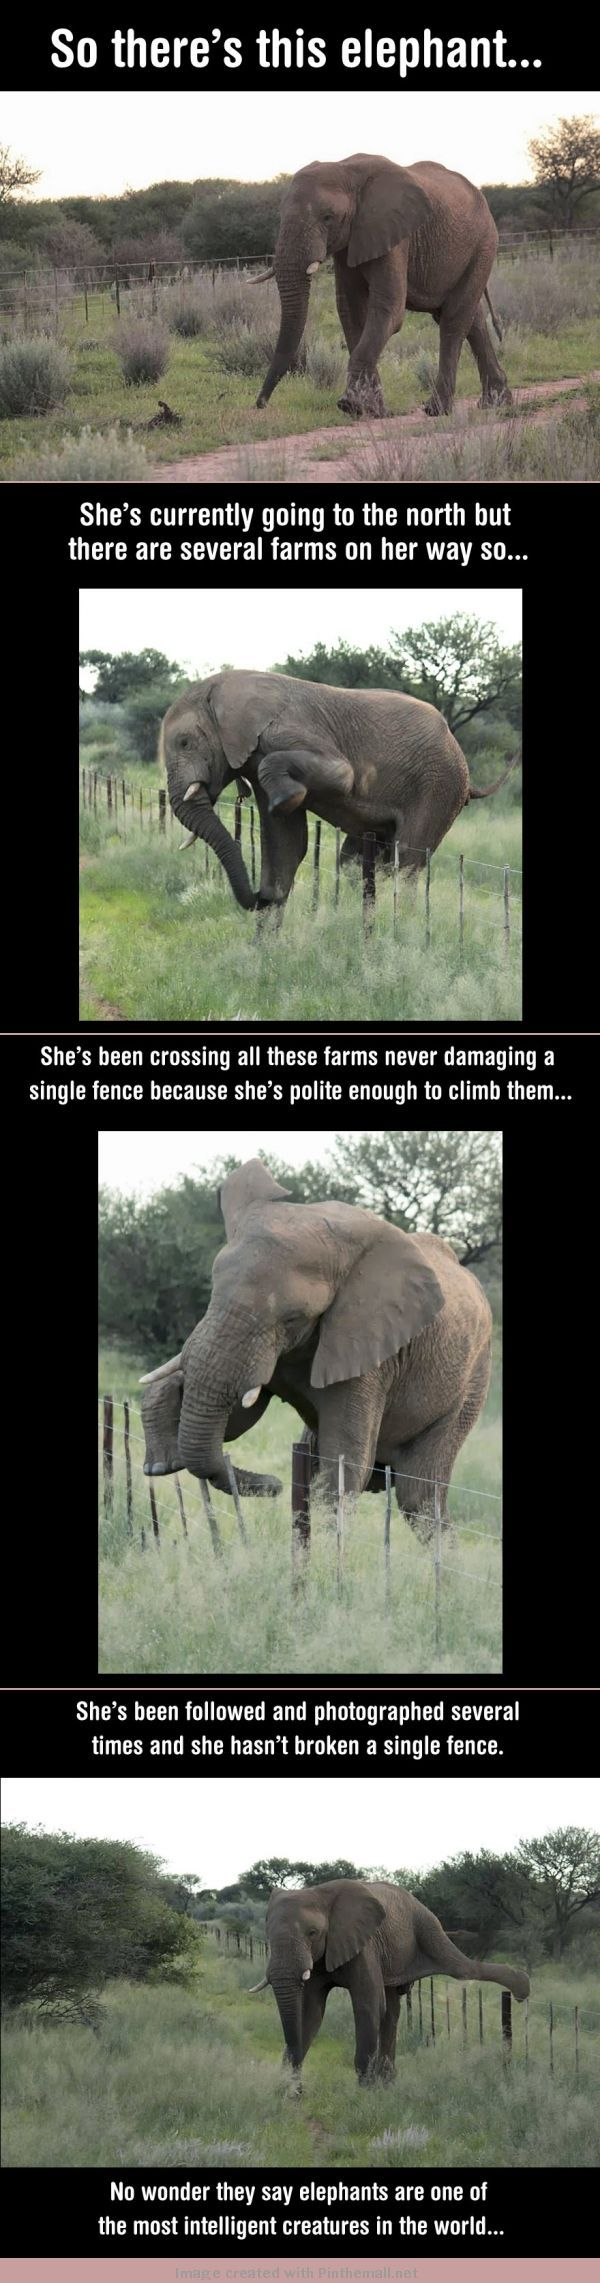 Elephants are actually surprisingly graceful animals